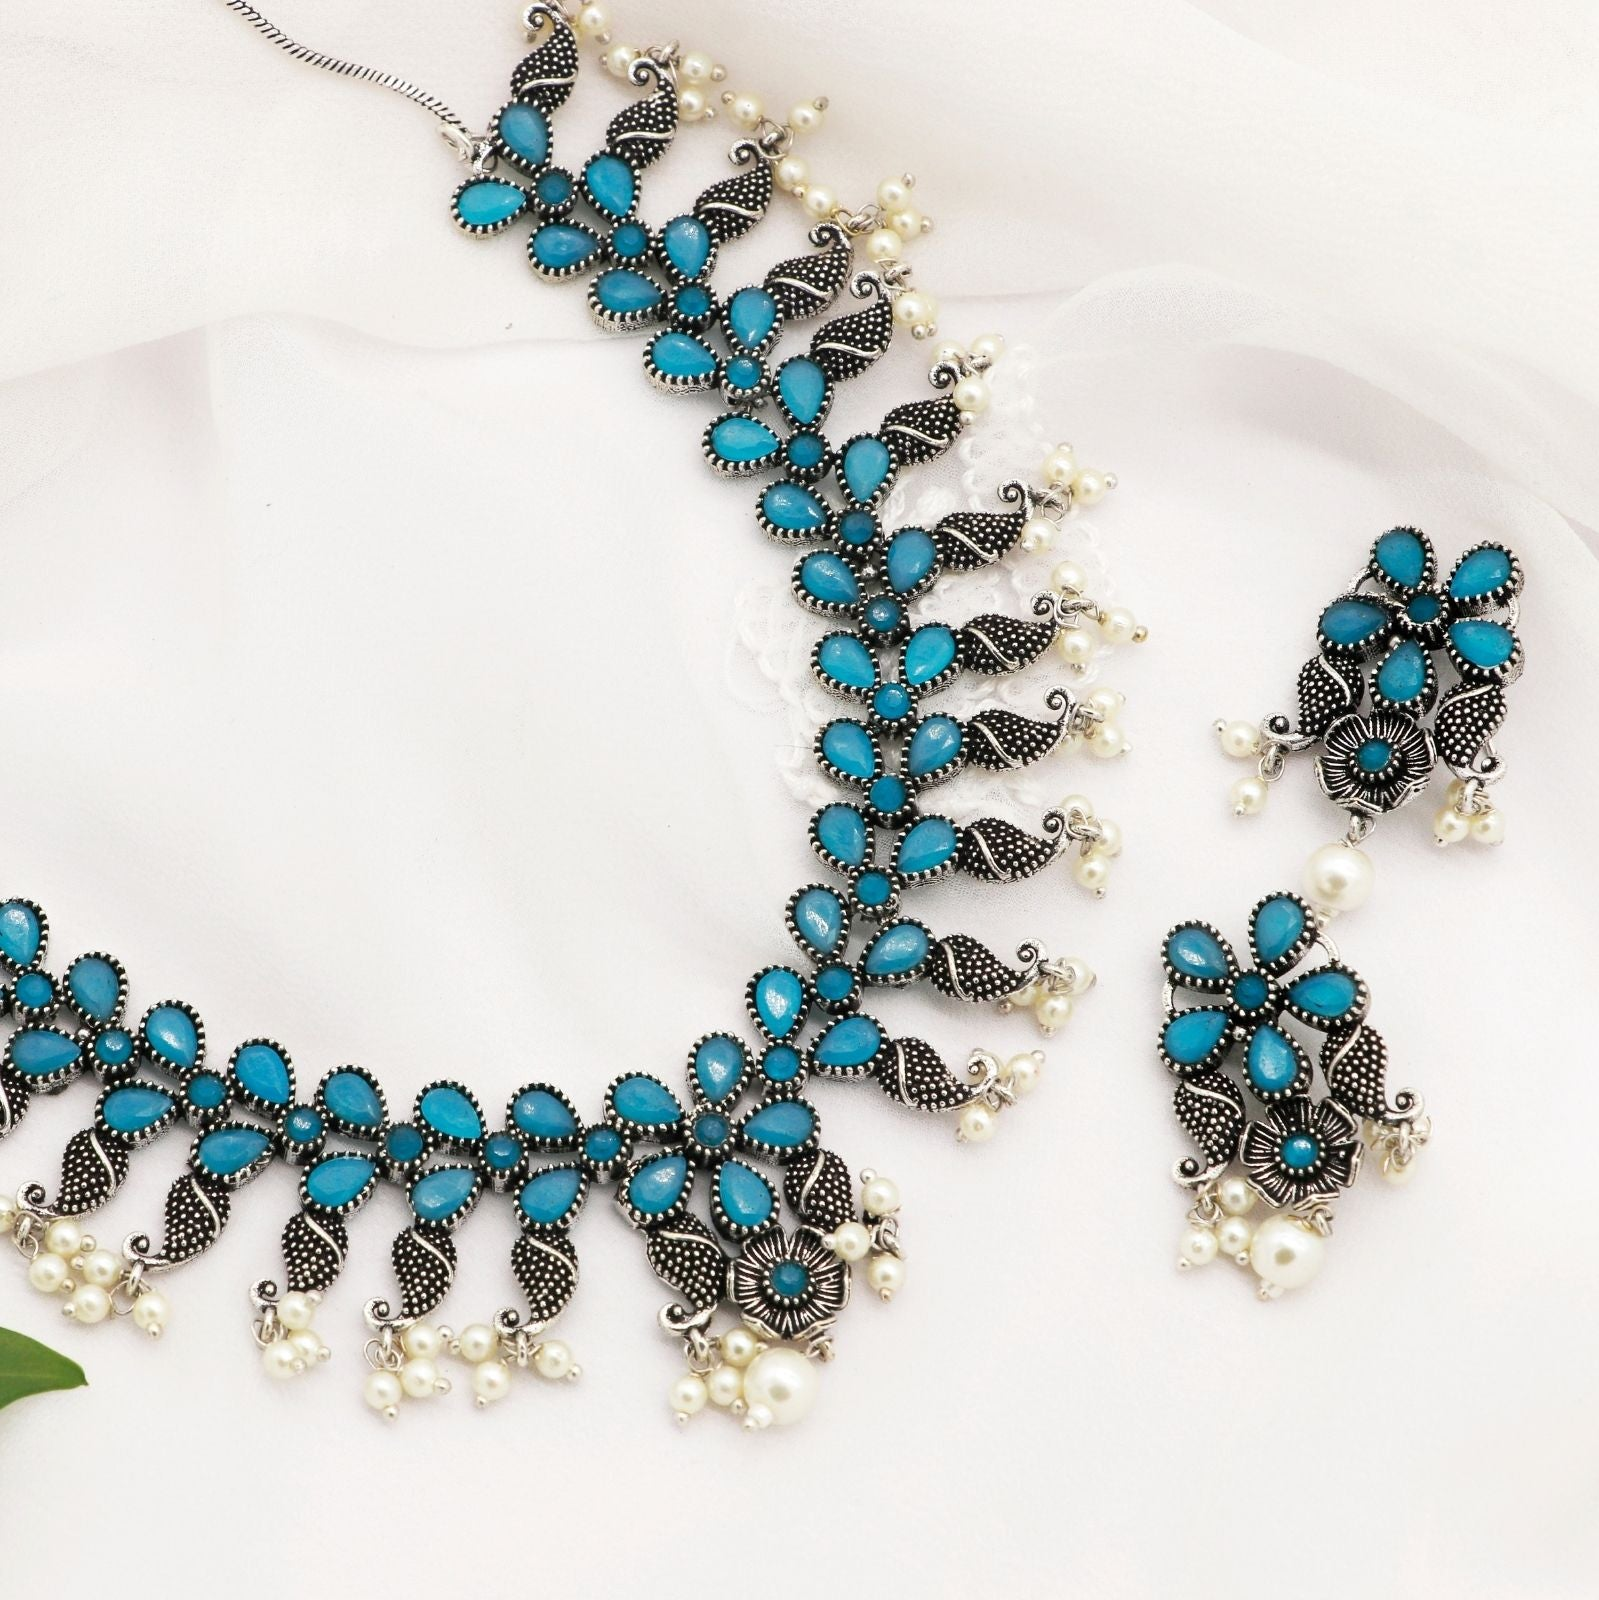 Niranjana Light Blue Stone Silver Oxidized Necklace Set - Teejh